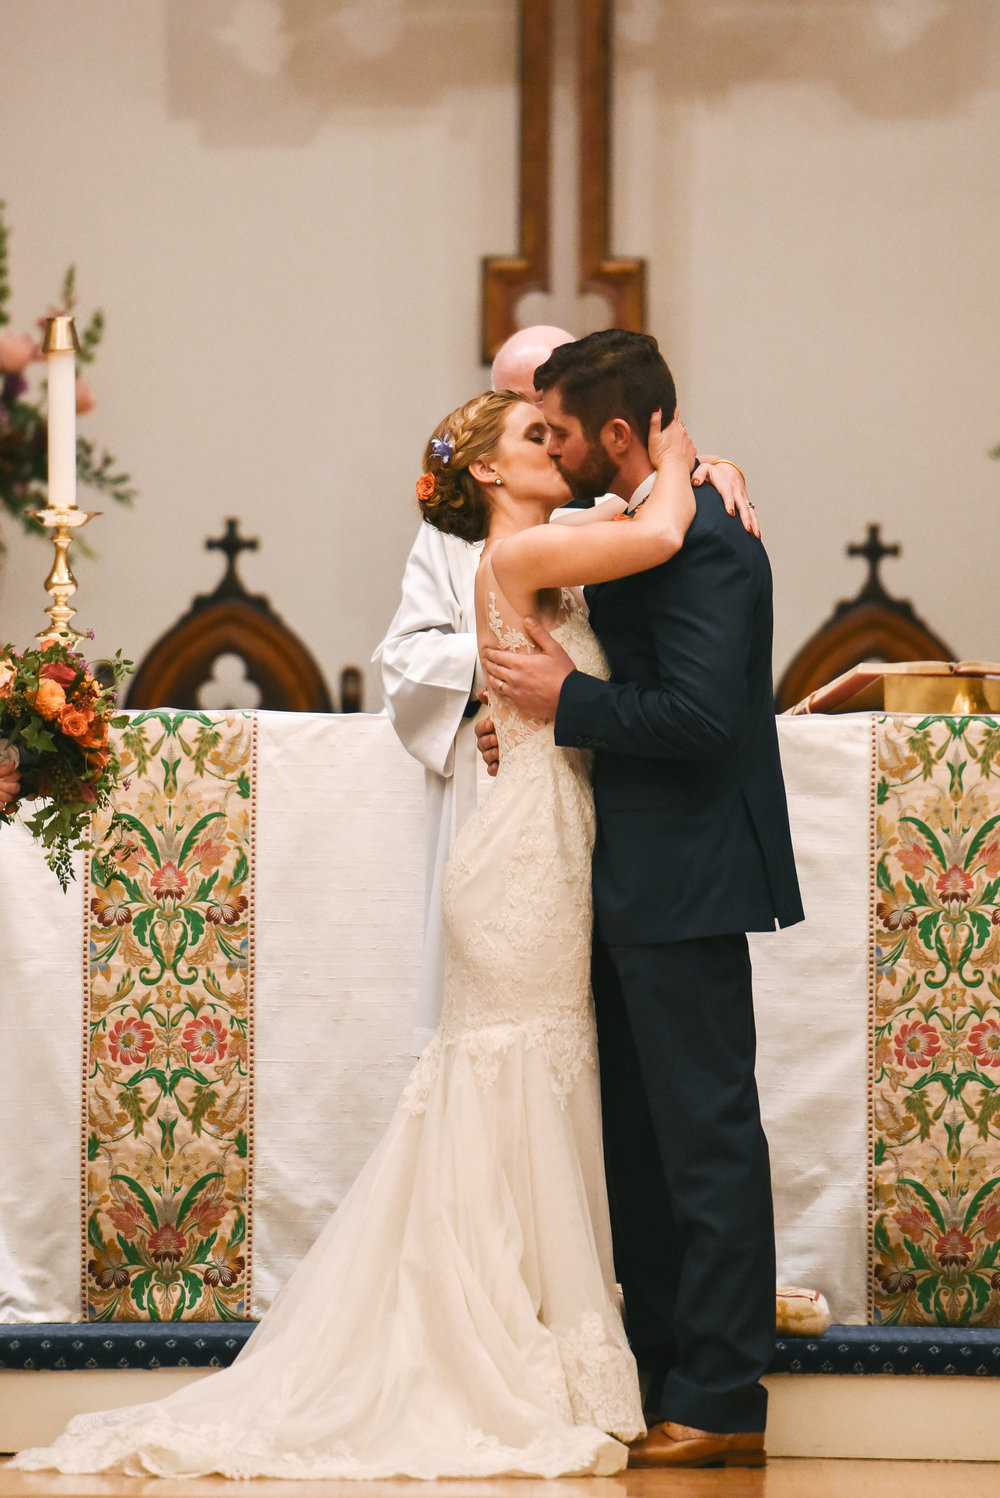 Alexandria, DC, Jos A. Bank Suit, Lian Carlo Wedding Dress, St. Paul's Episcopal Church, Church Wedding, Ceremony, First Kiss, Bride and Groom, Wedding Kiss, Baltimore Wedding Photographer